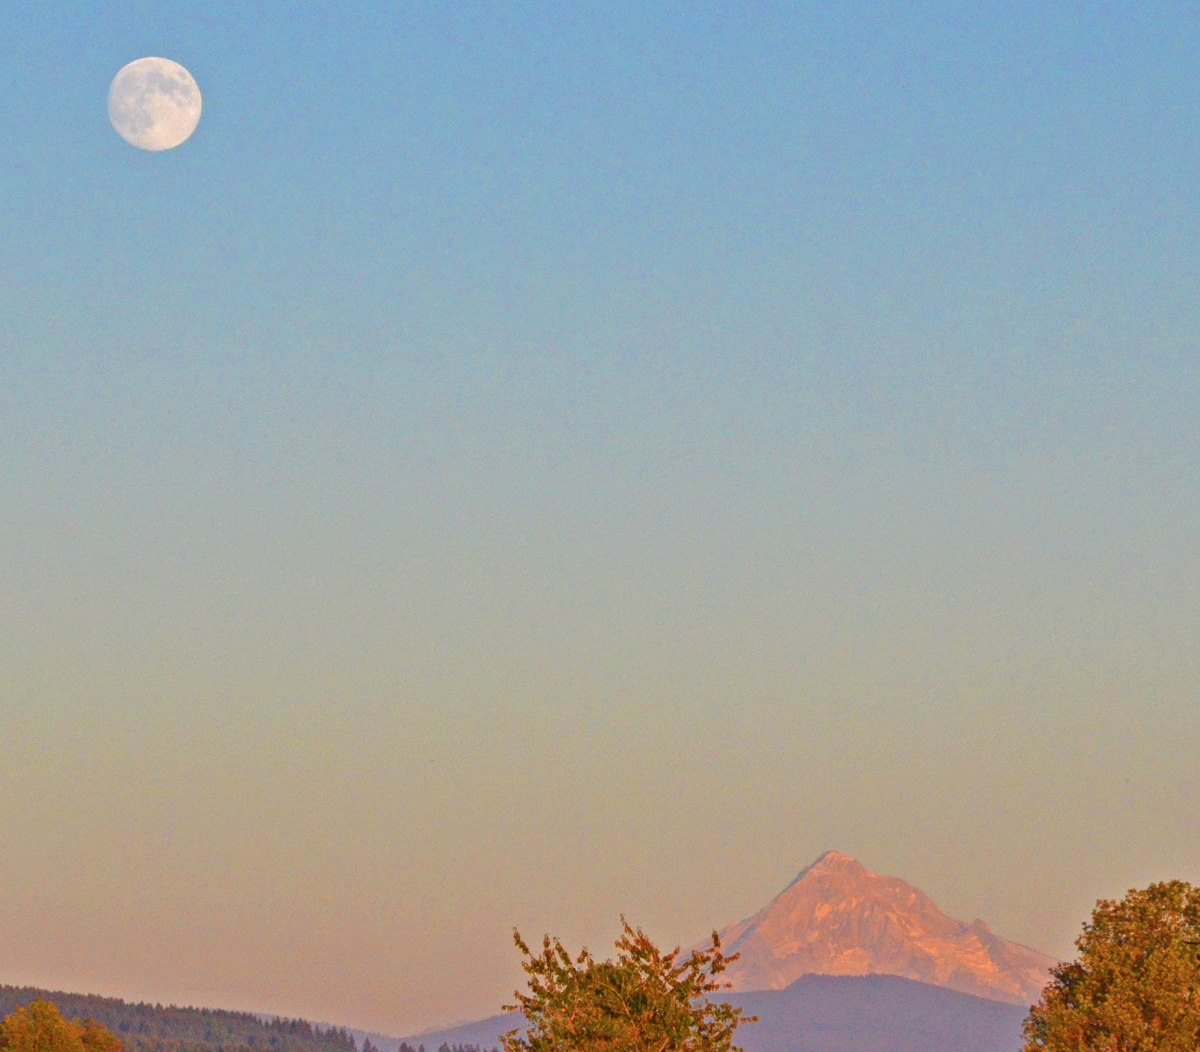 August 2013 Moon Seen With Mt. Hood, Washington